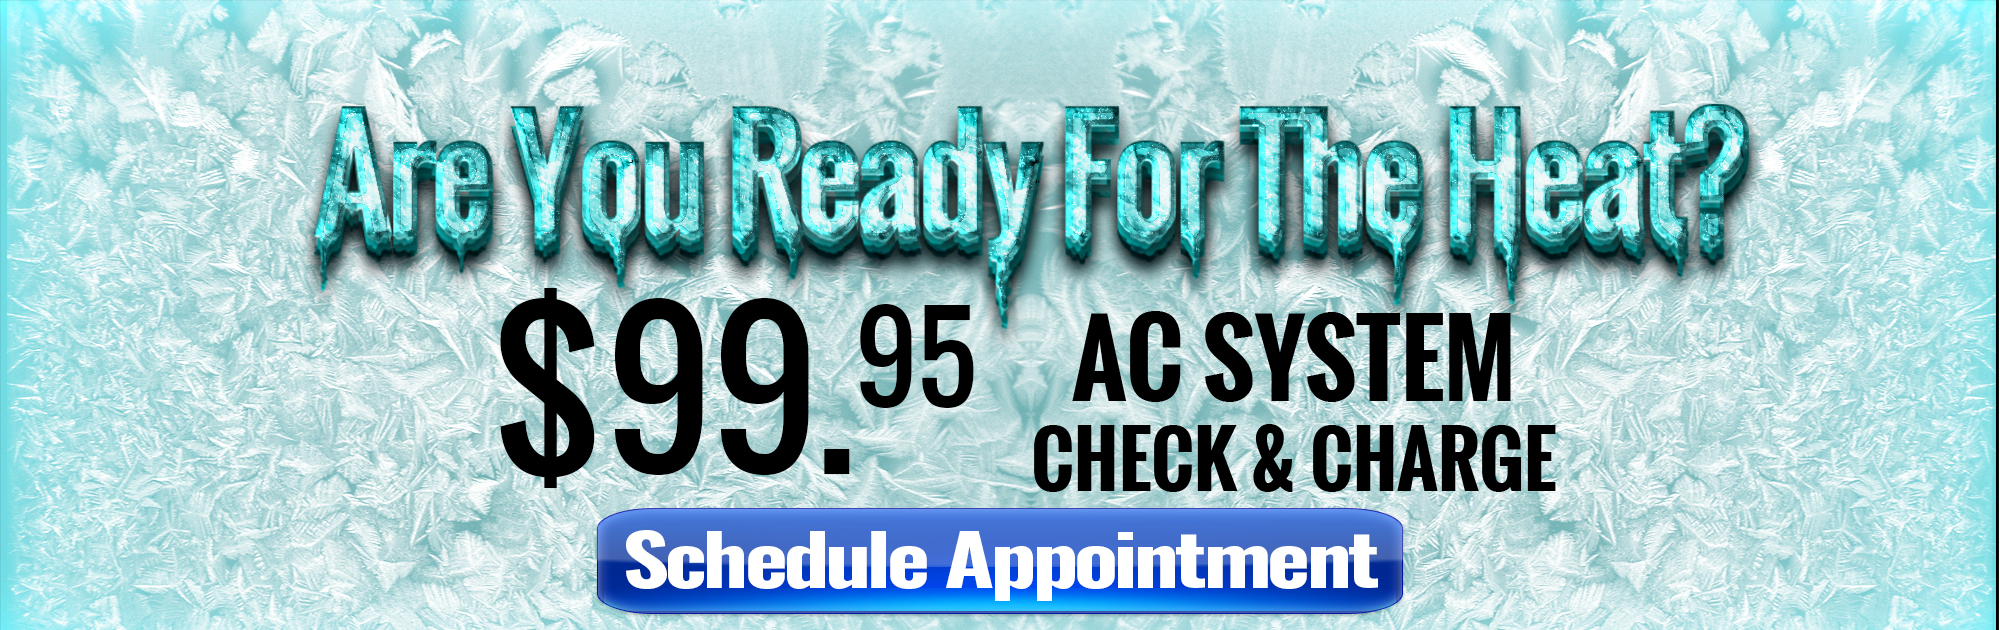 Air Conditioning System Check & Charge at Brad Deery Motors near